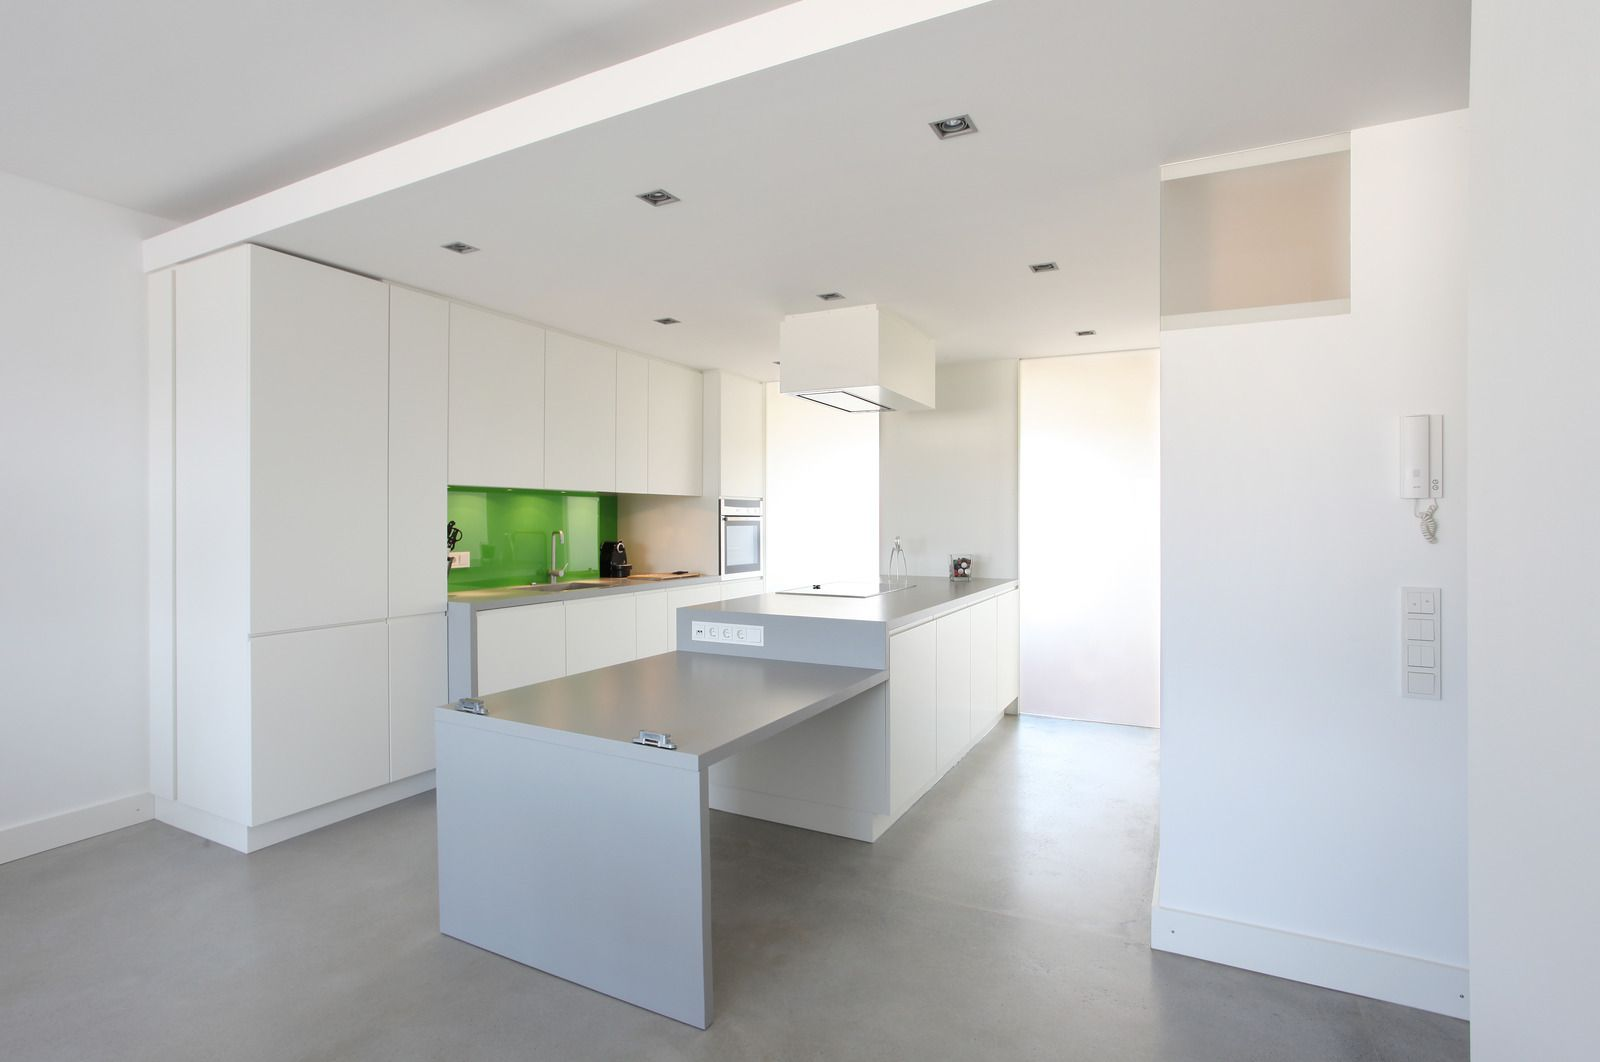 Modern Suspended Ceiling Apartment Kitchen Interior